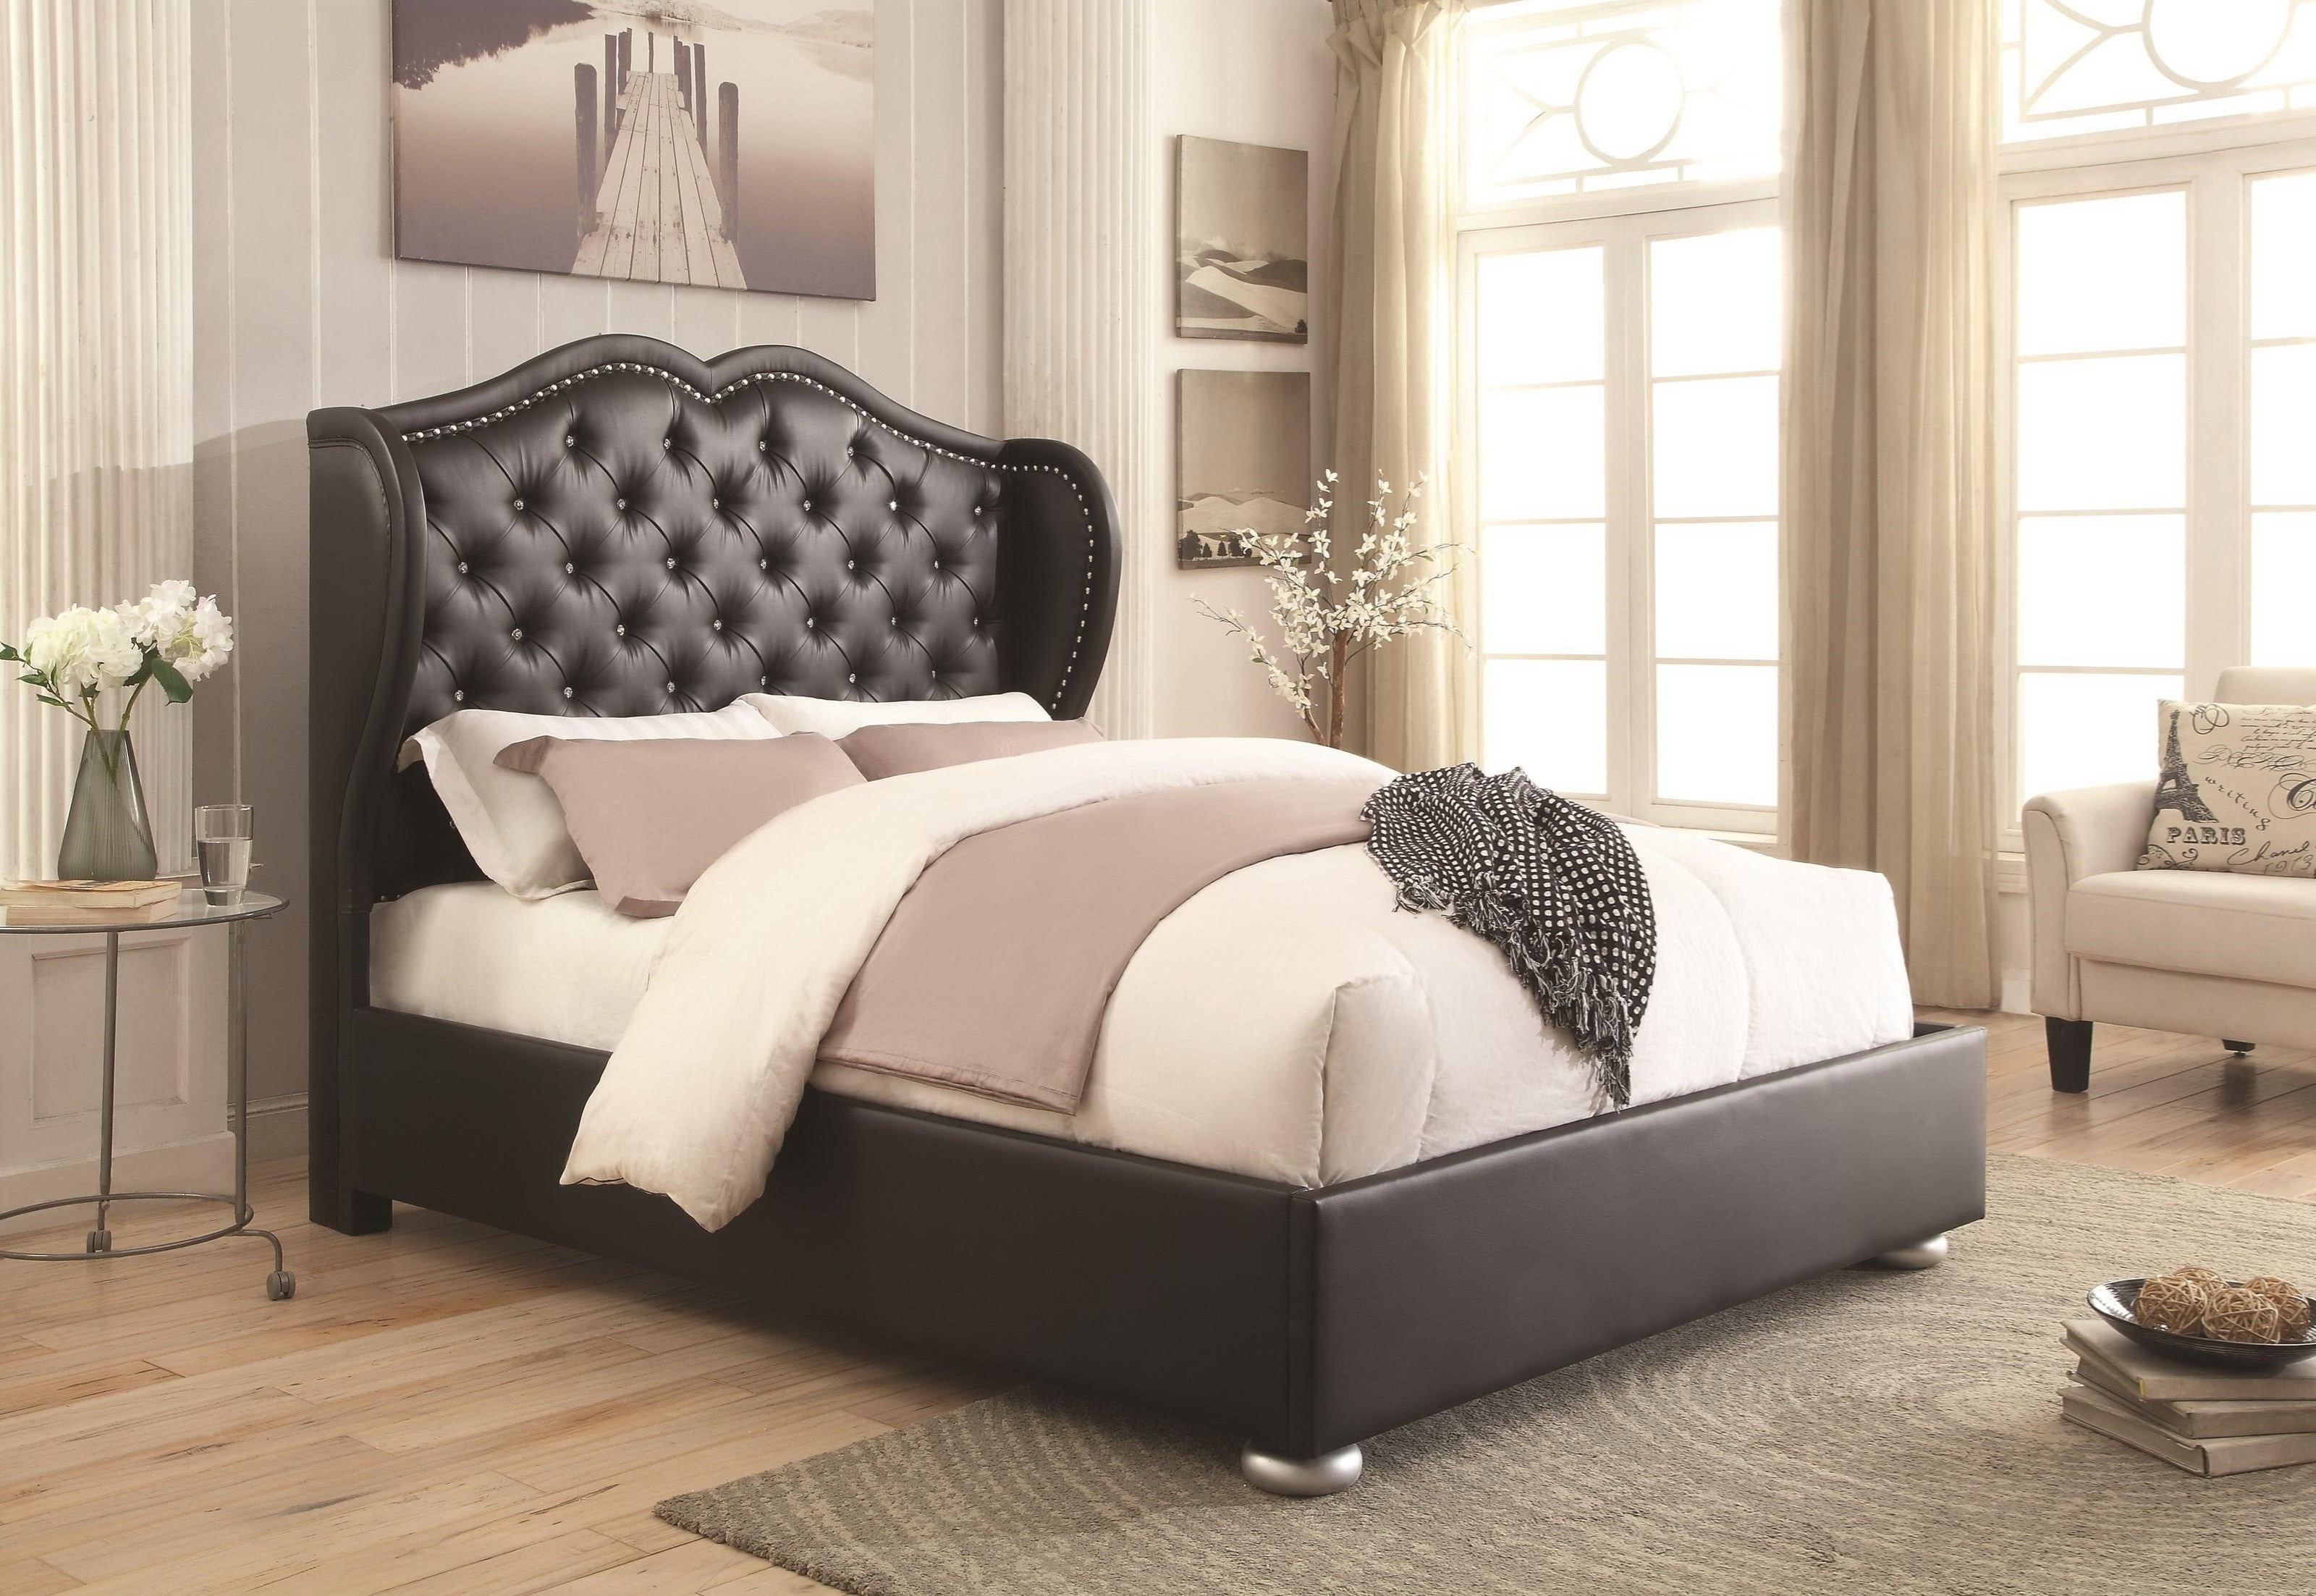 clarice upholstered bed frame las vegas furniture store mode